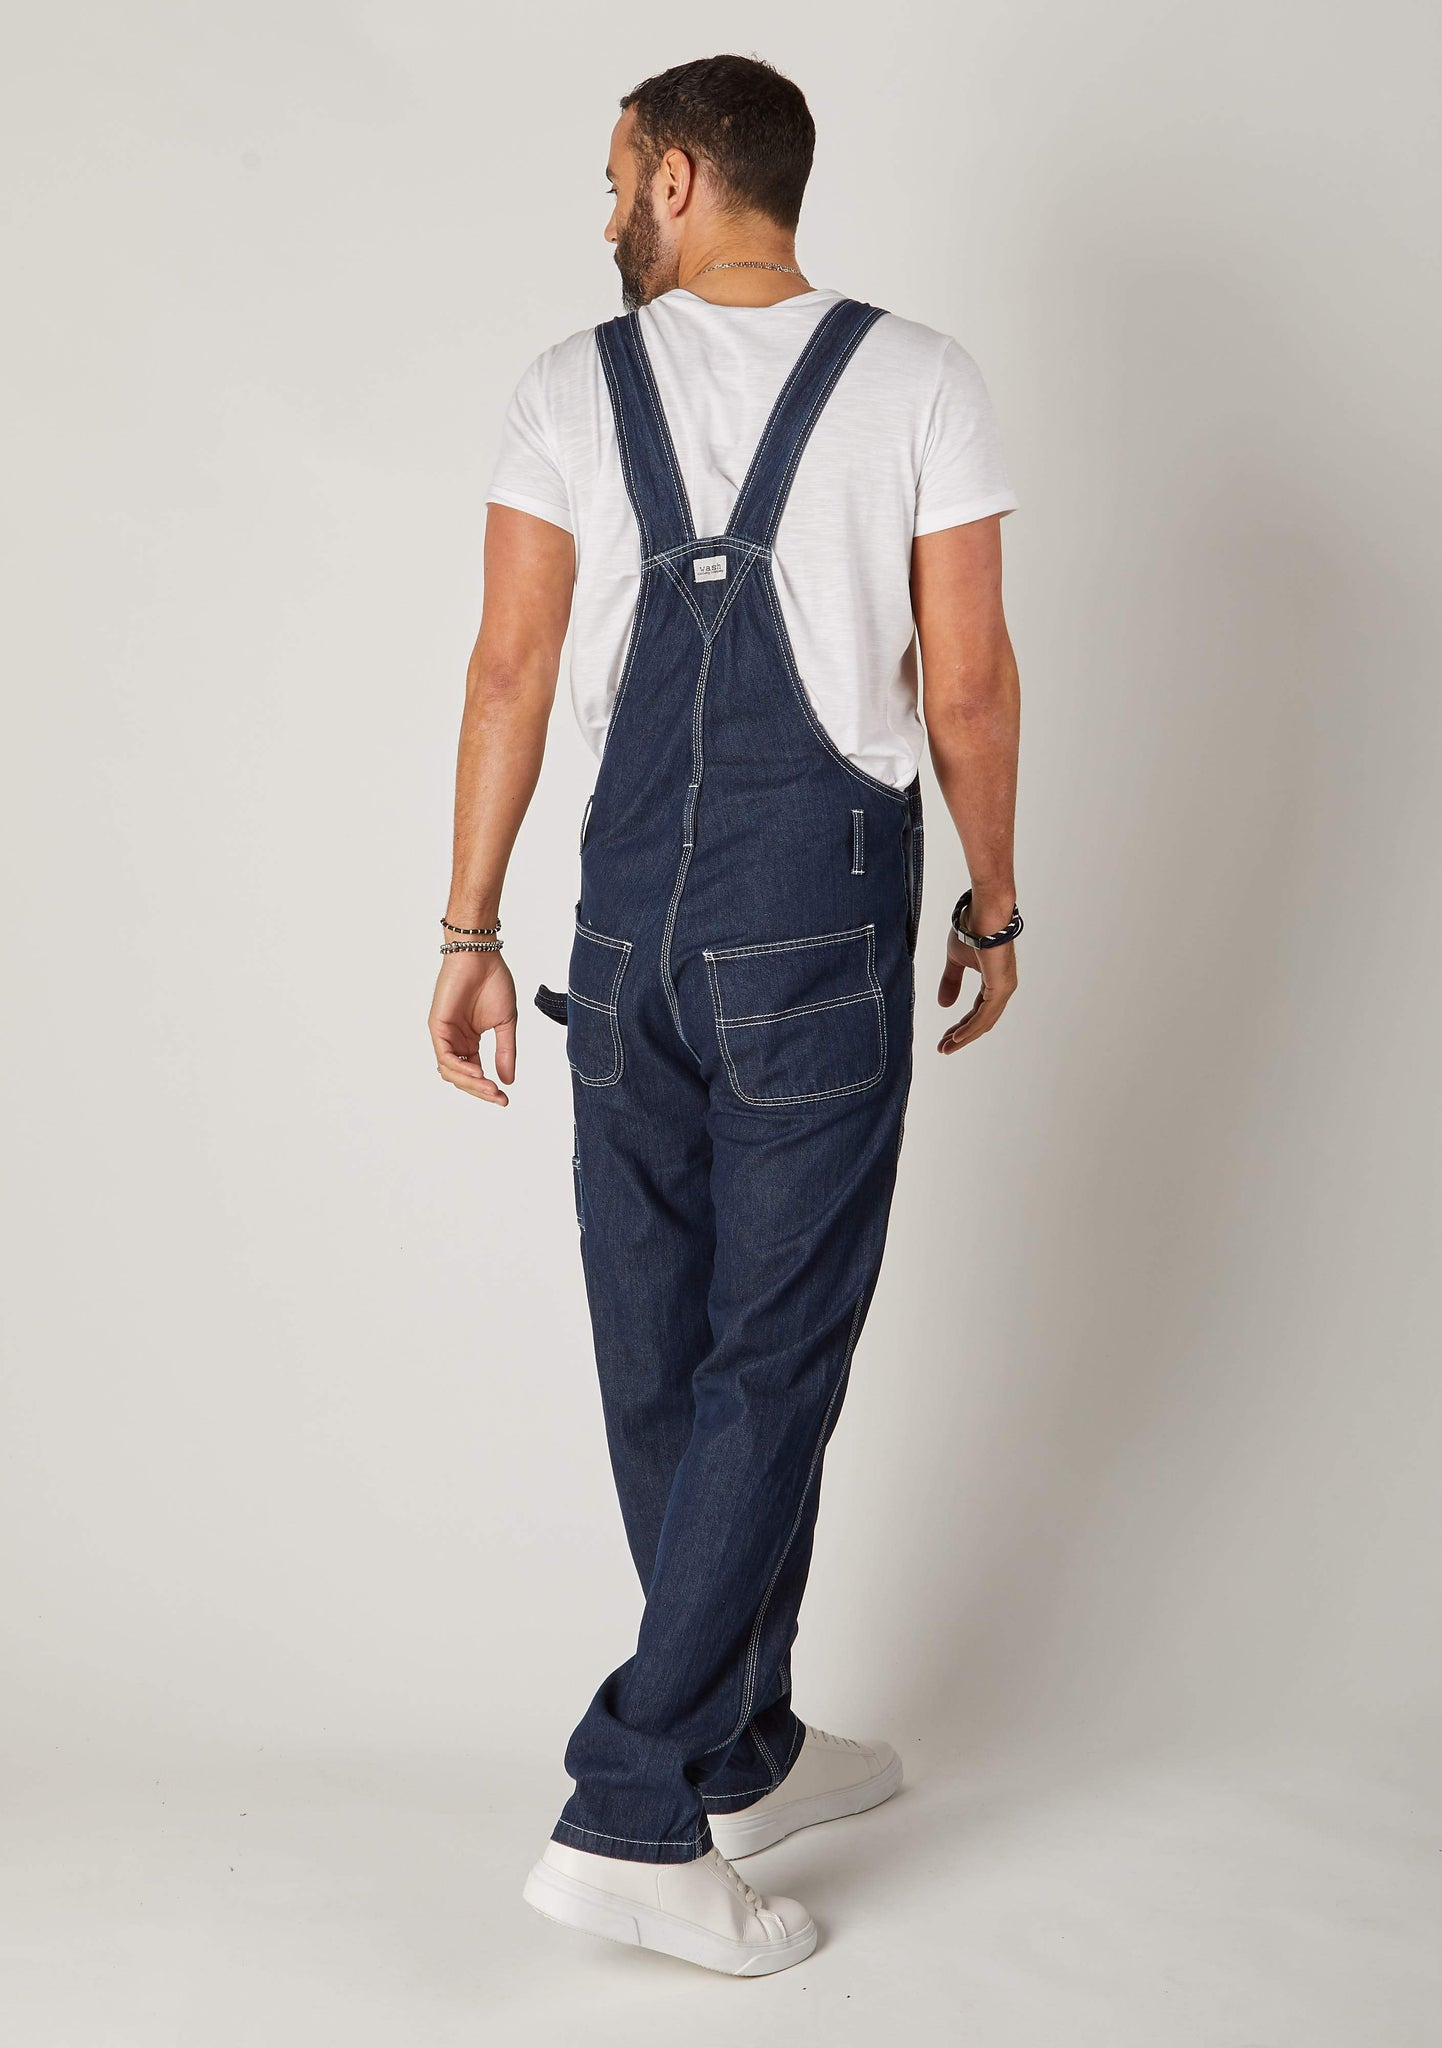 Rear full-length pose mens dark blue bib-overalls showing back of straps.